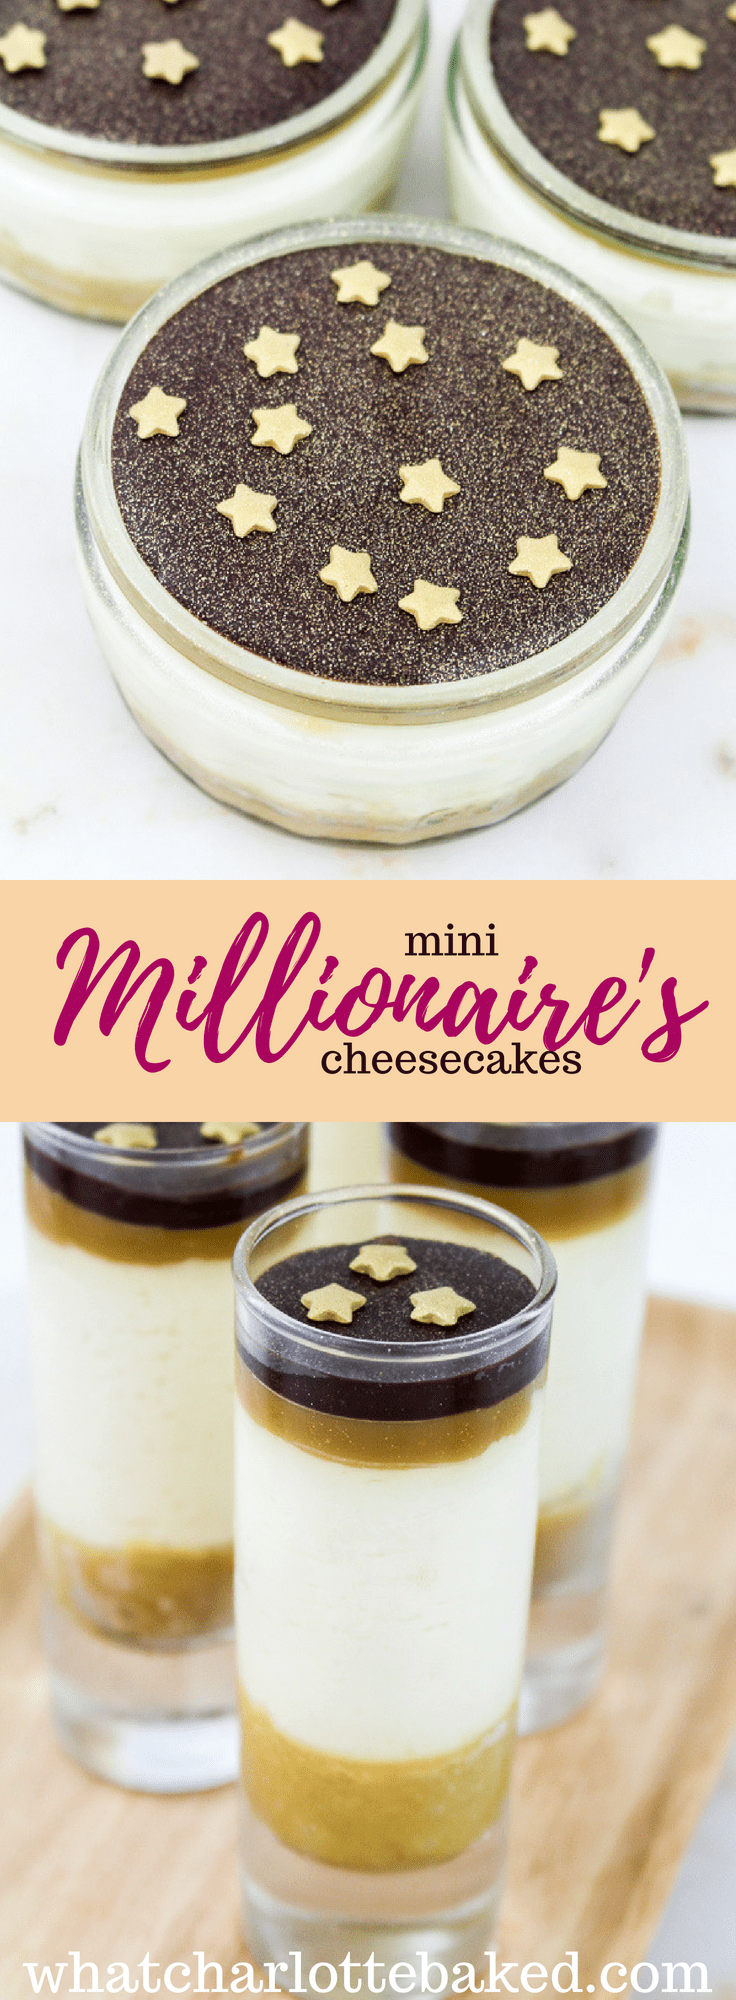 Mini Millionaire's Cheesecakes recipe | What Charlotte Baked